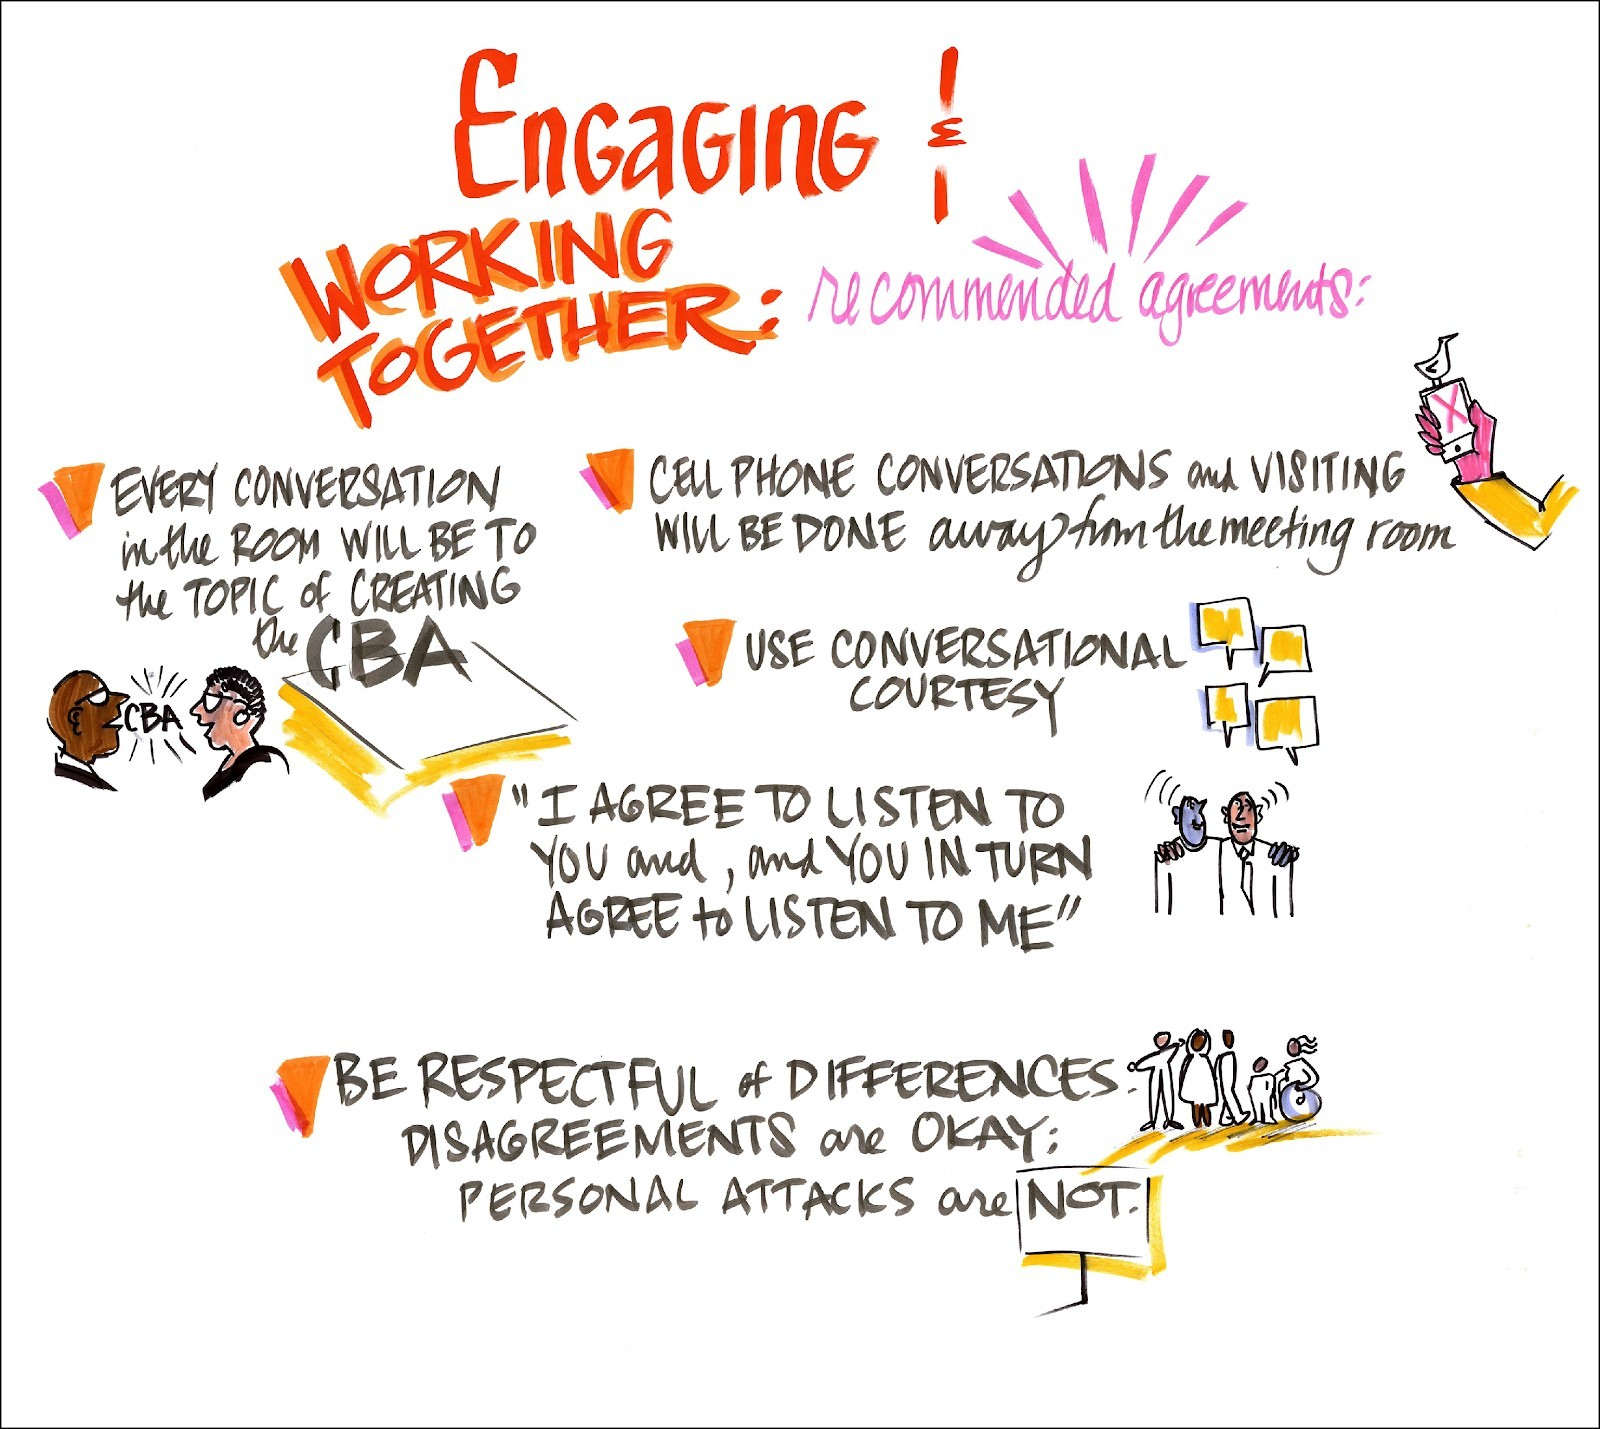 Engaging Working Together graphic recording image